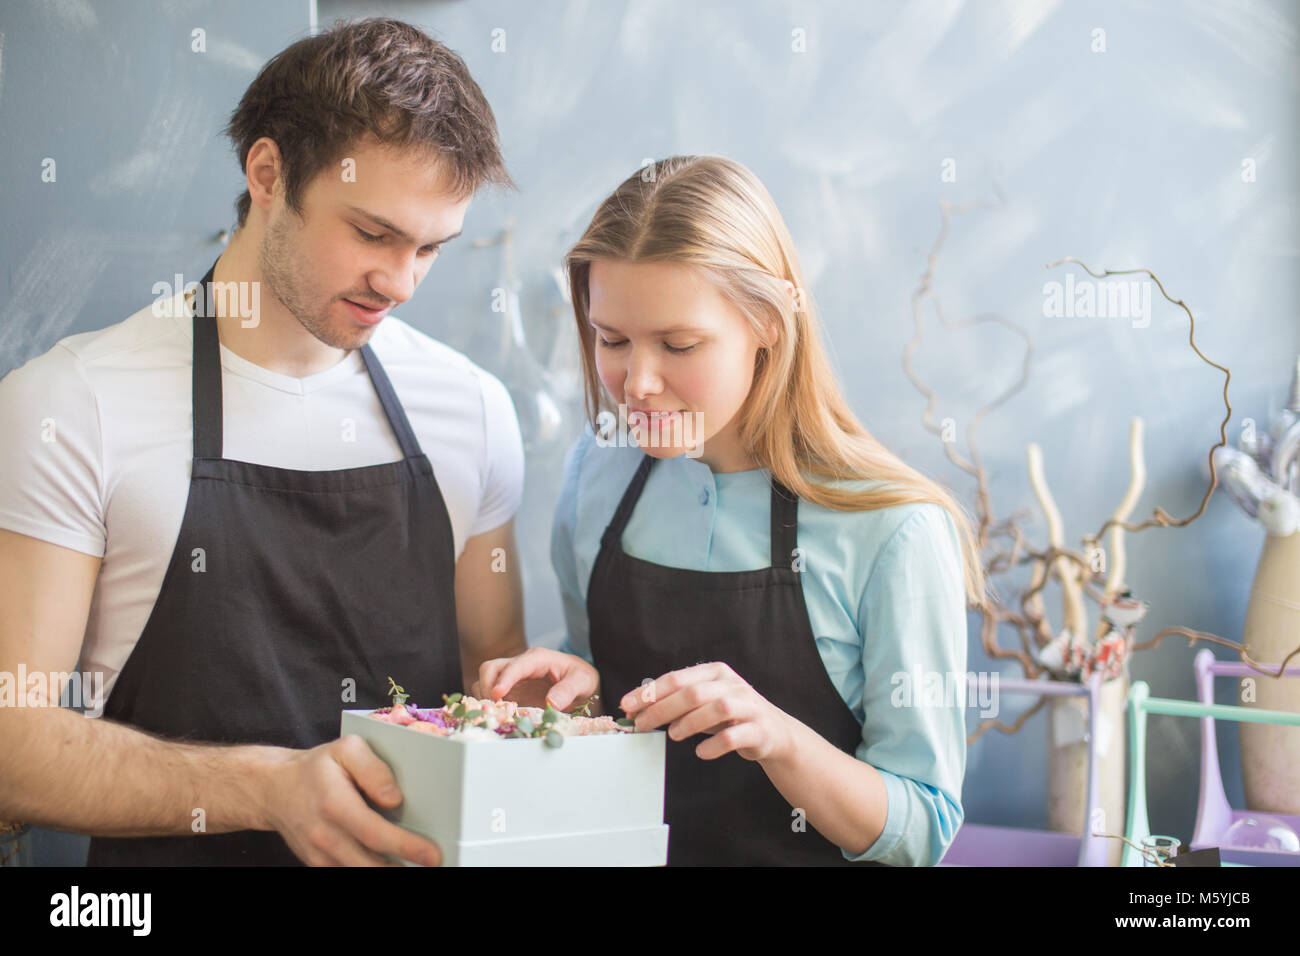 guy and blondy girl looking at box of flowers - Stock Image